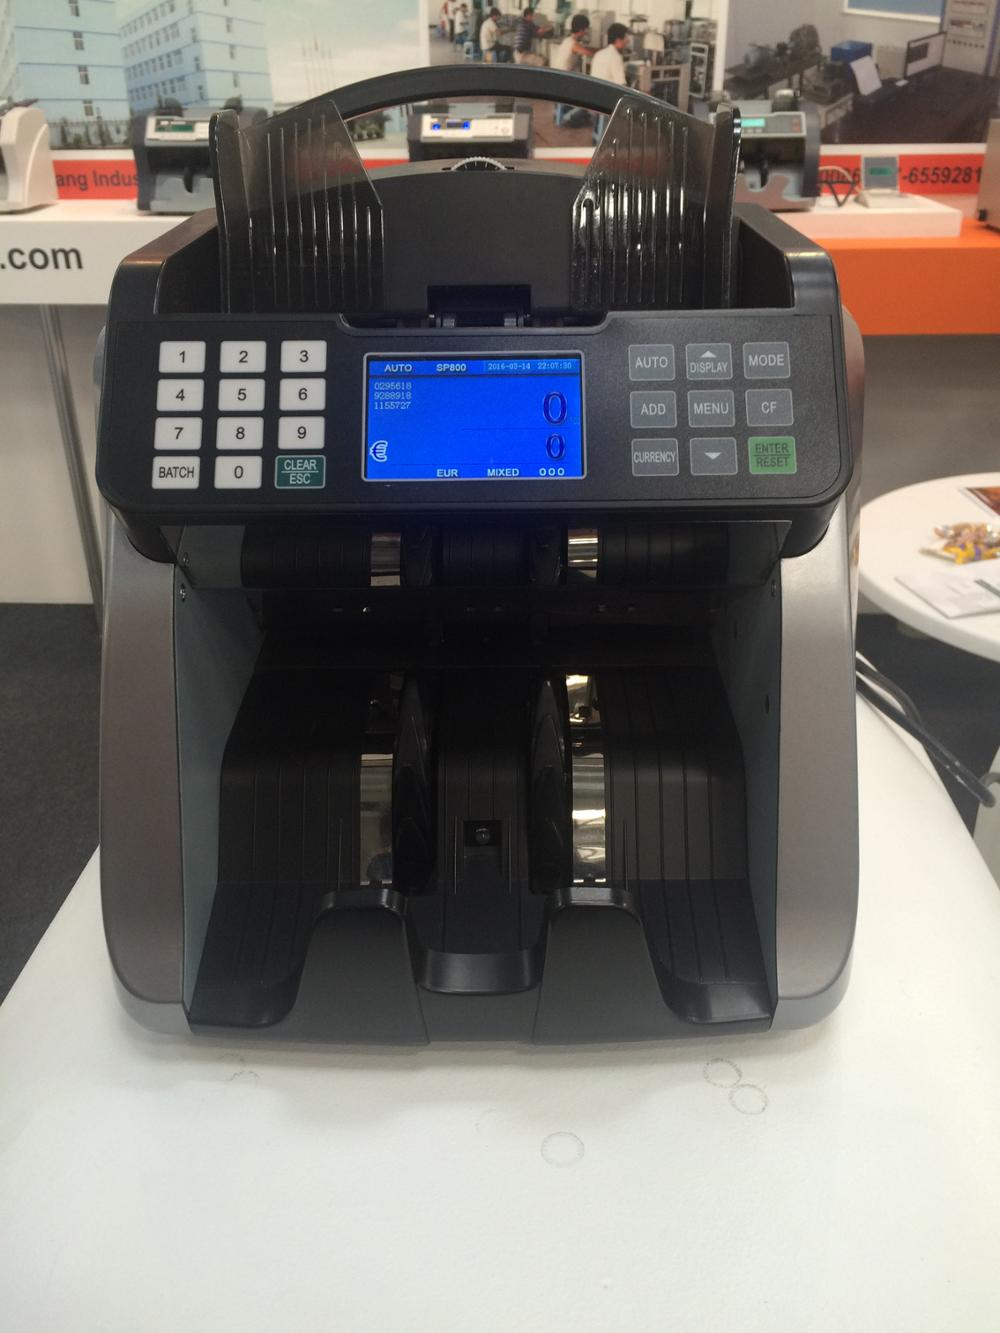 cis money counter KX-8600